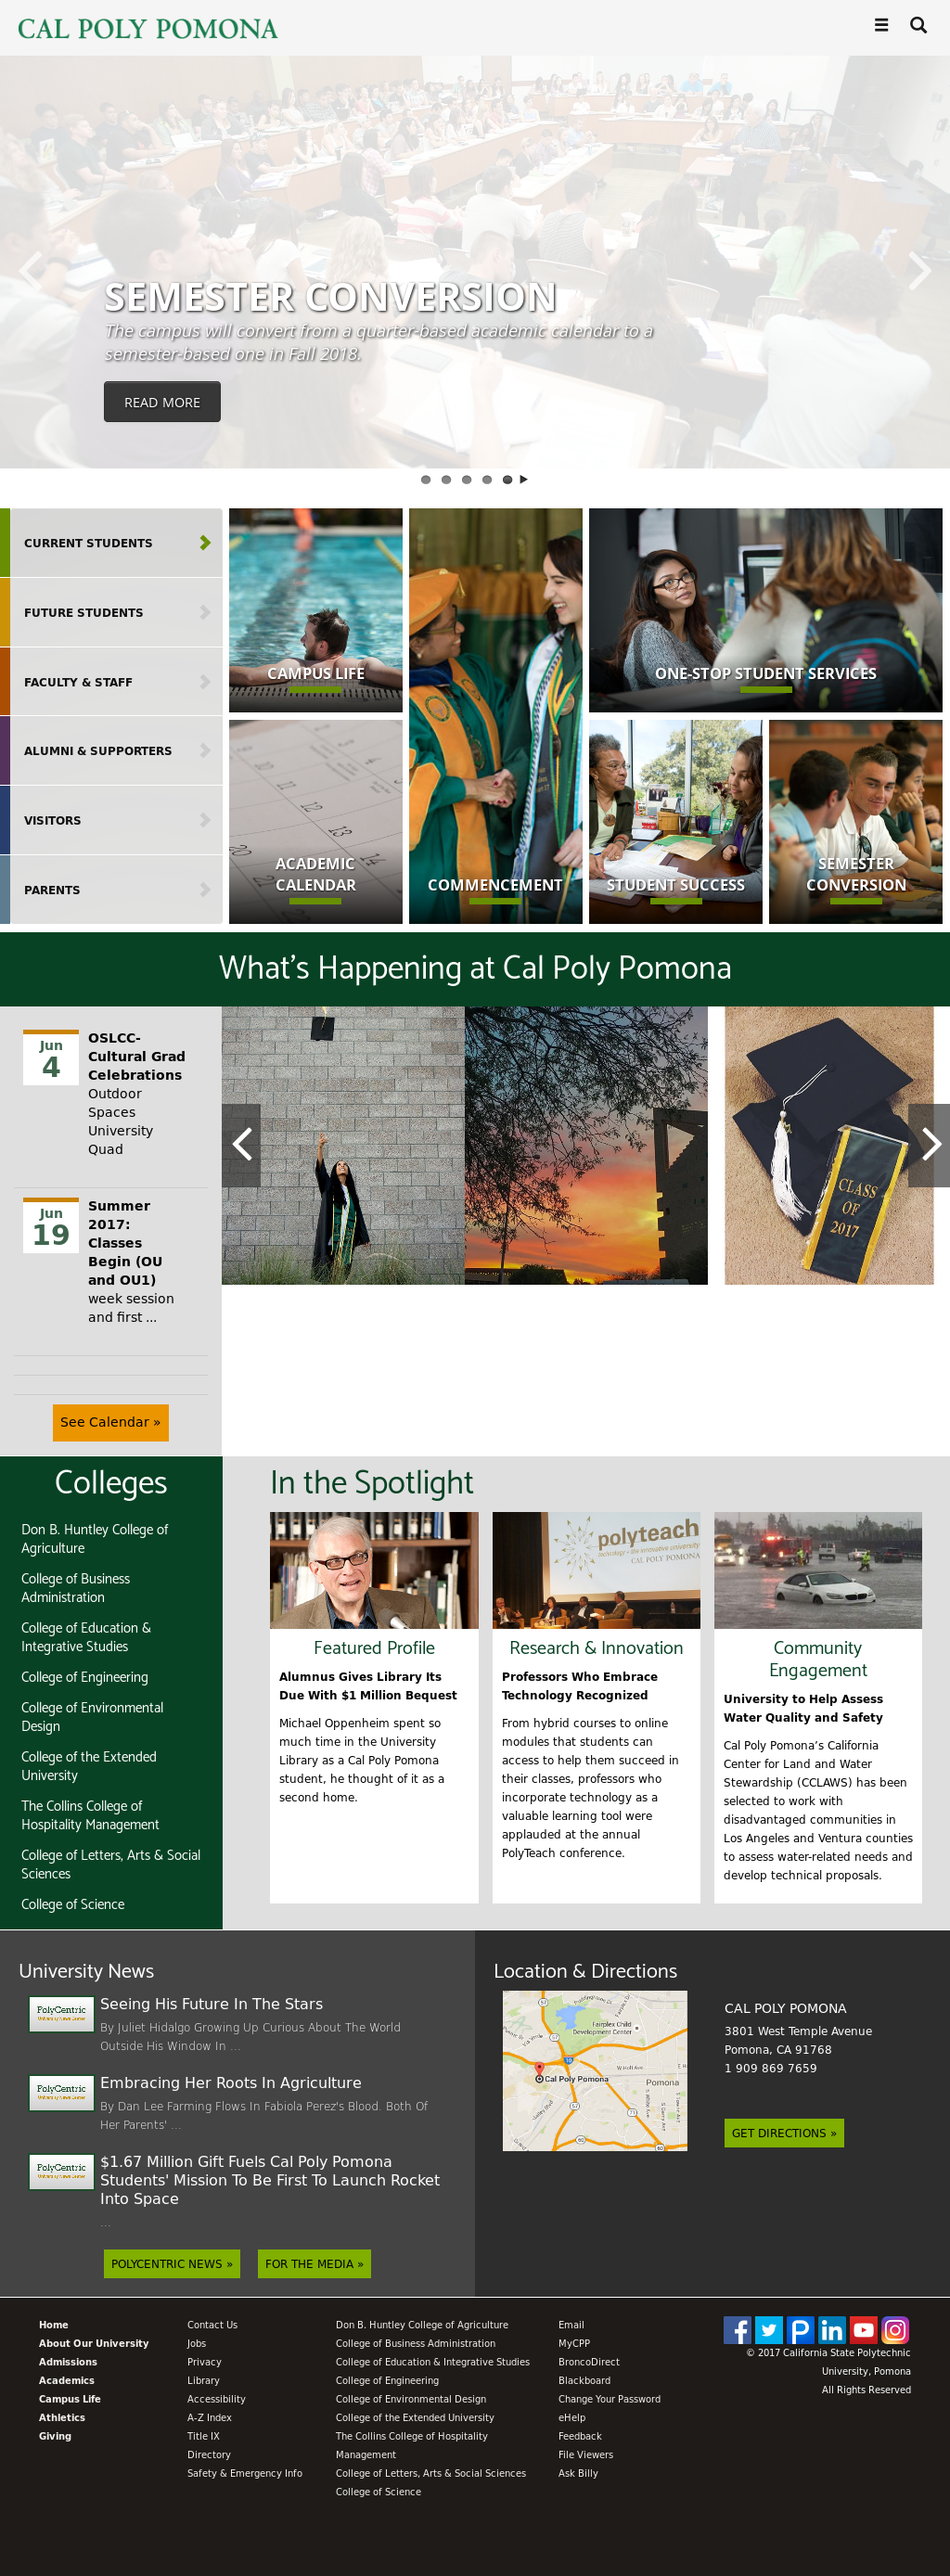 Cal Poly Pomona Academic Calendar.Cal Poly Pomona Competitors Revenue And Employees Owler Company